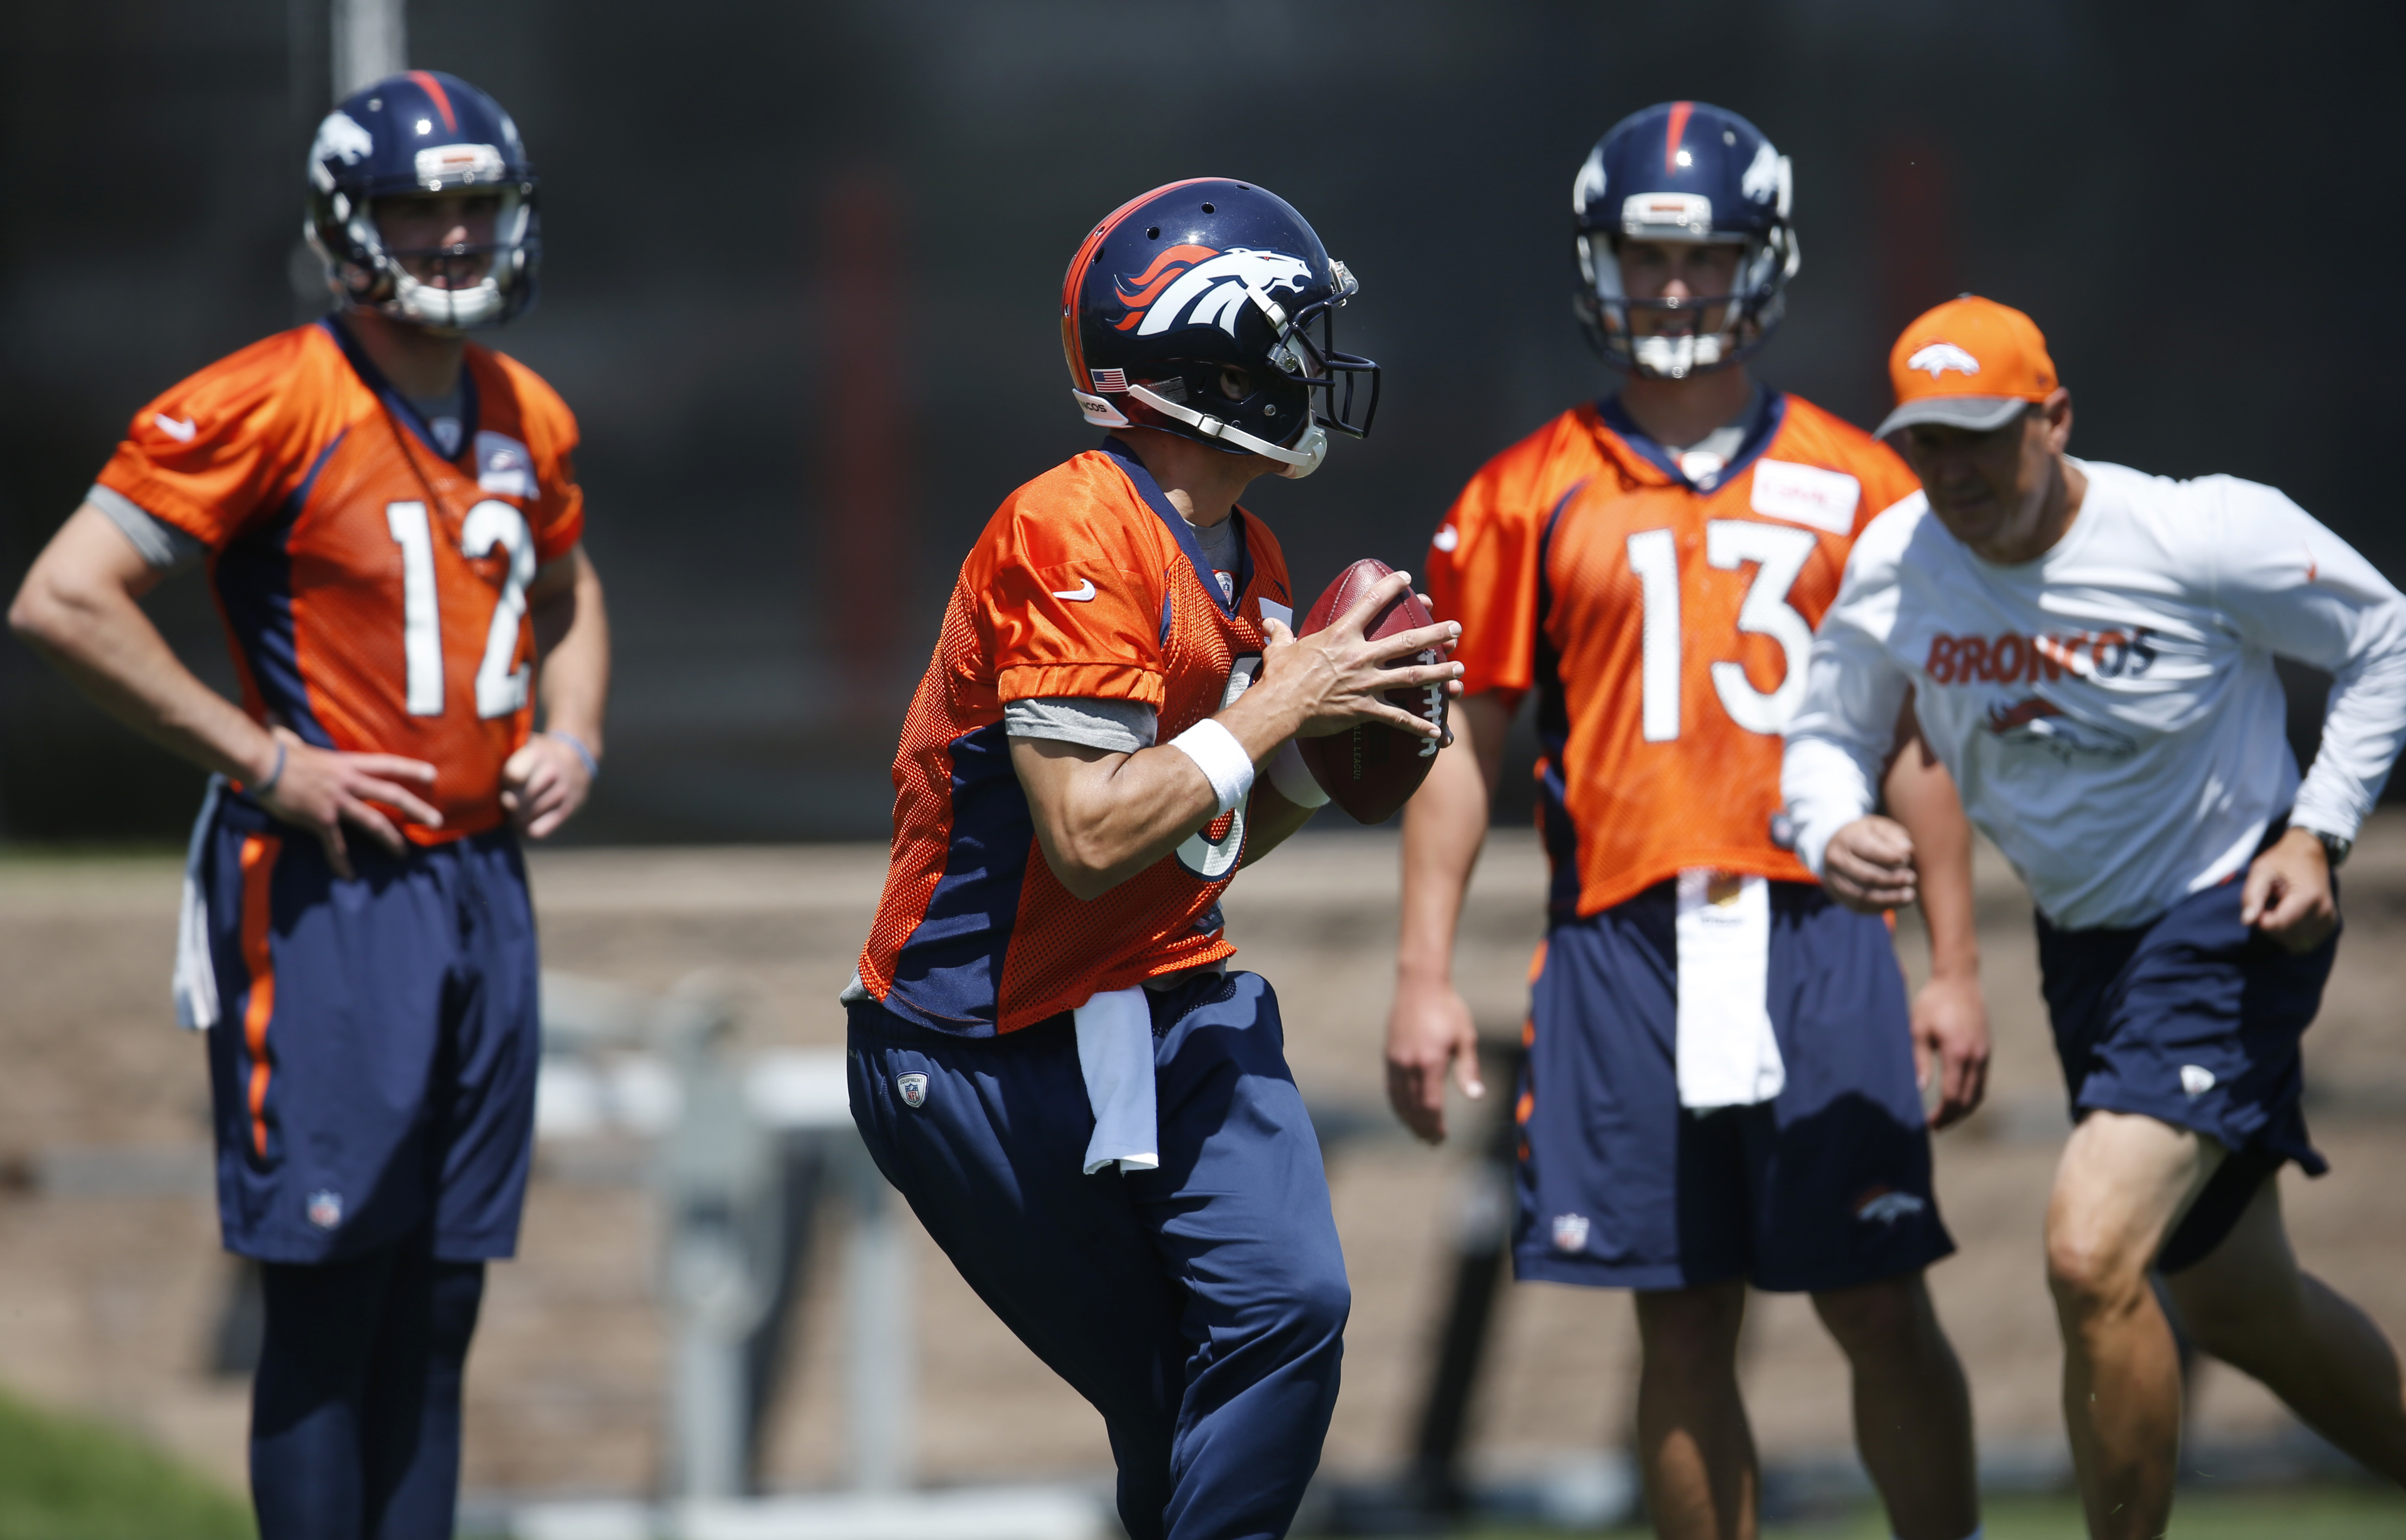 Denver Broncos quarterback Mark Sanchez, front, drops back to pass as, from back left, quarterbacks Paxton Lynch and Trevor Siemian and offensive coordinator Rick Dennison look on during an NFL football practice at the team's headquarters Tuesday, June 7,